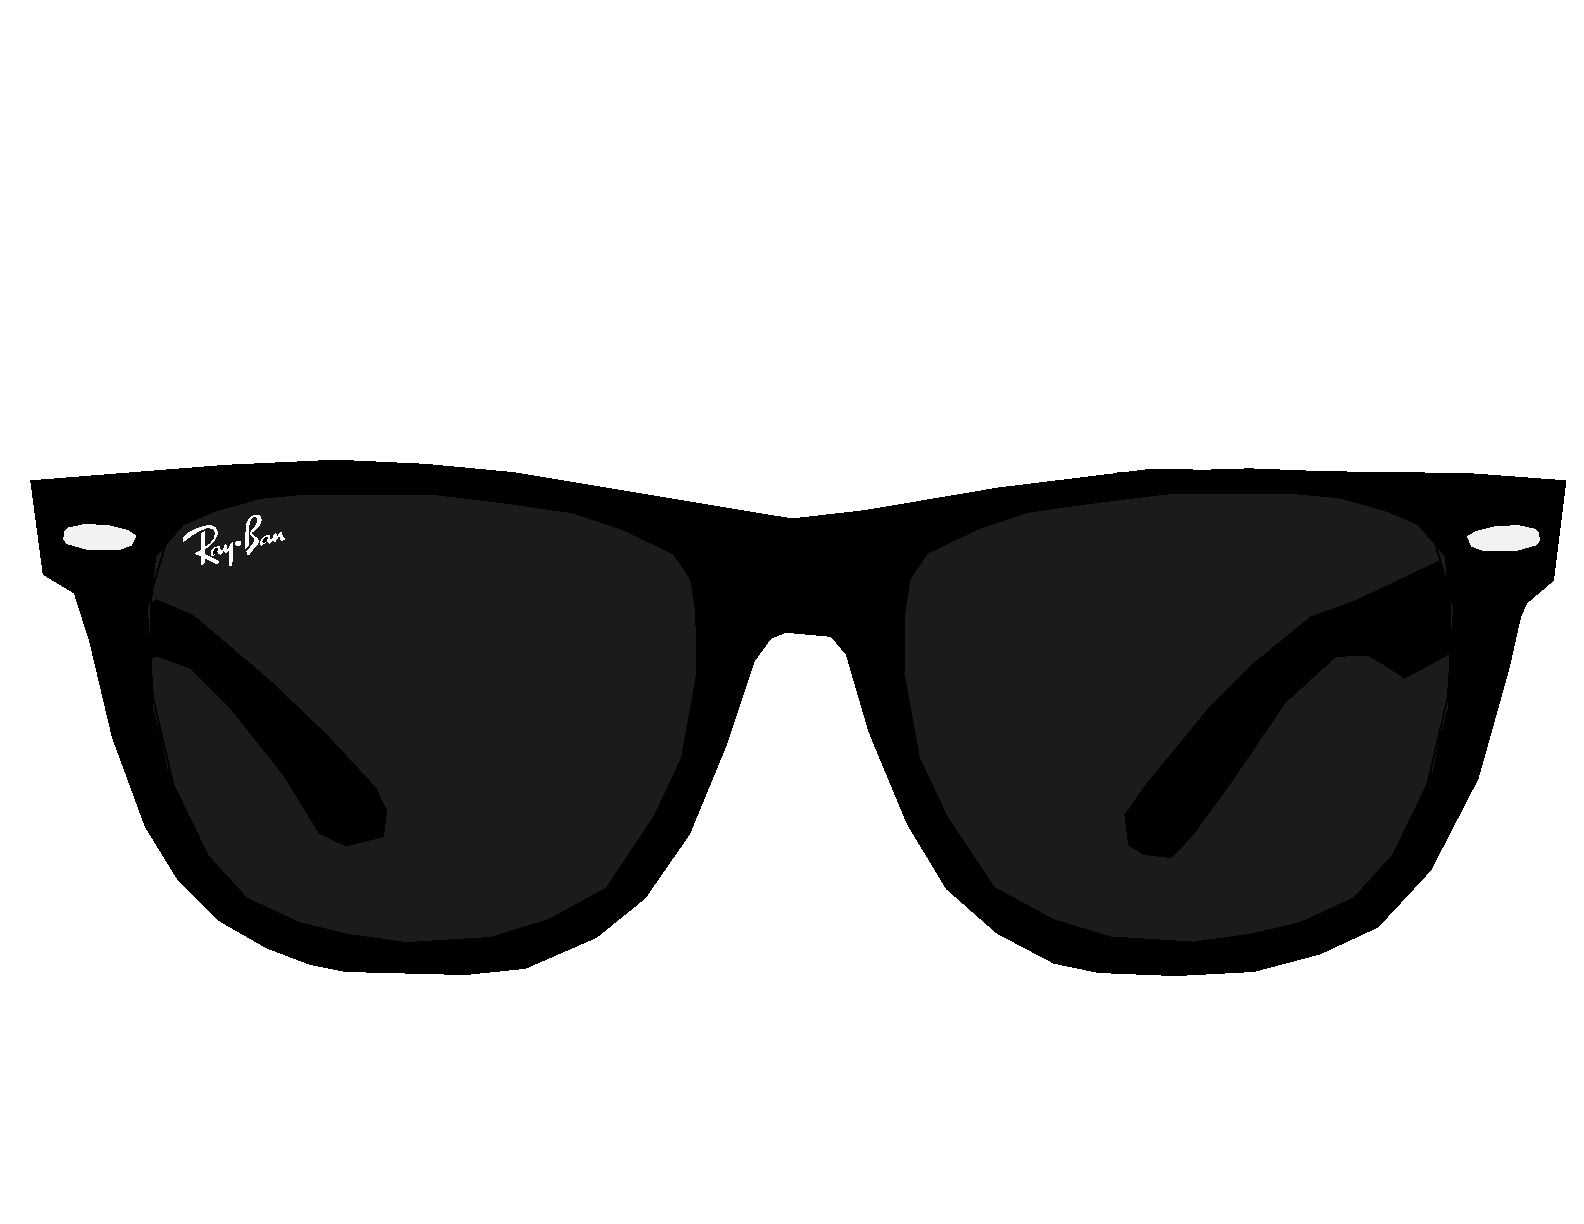 Sunglasses clipart #9, Download drawings